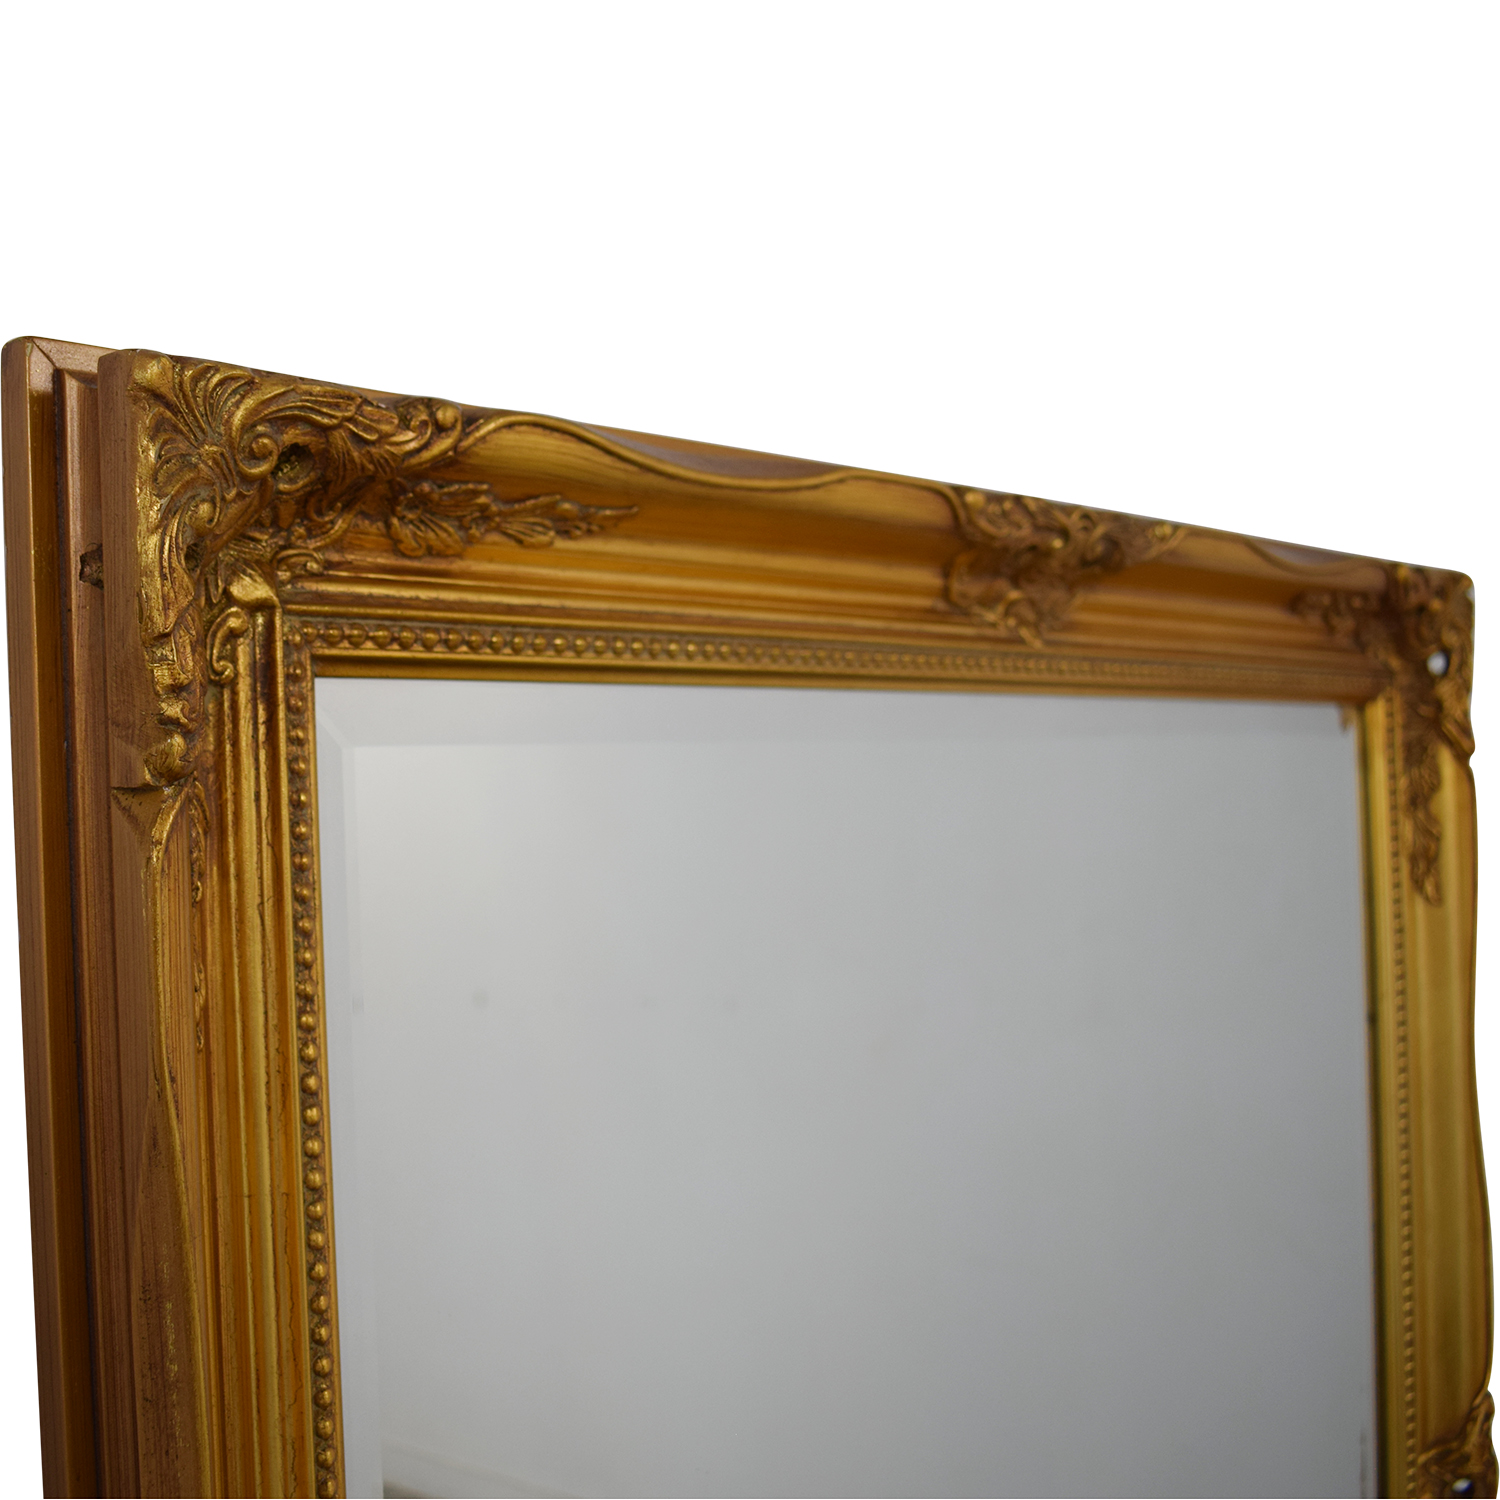 Large Gold Framed Mirror second hand